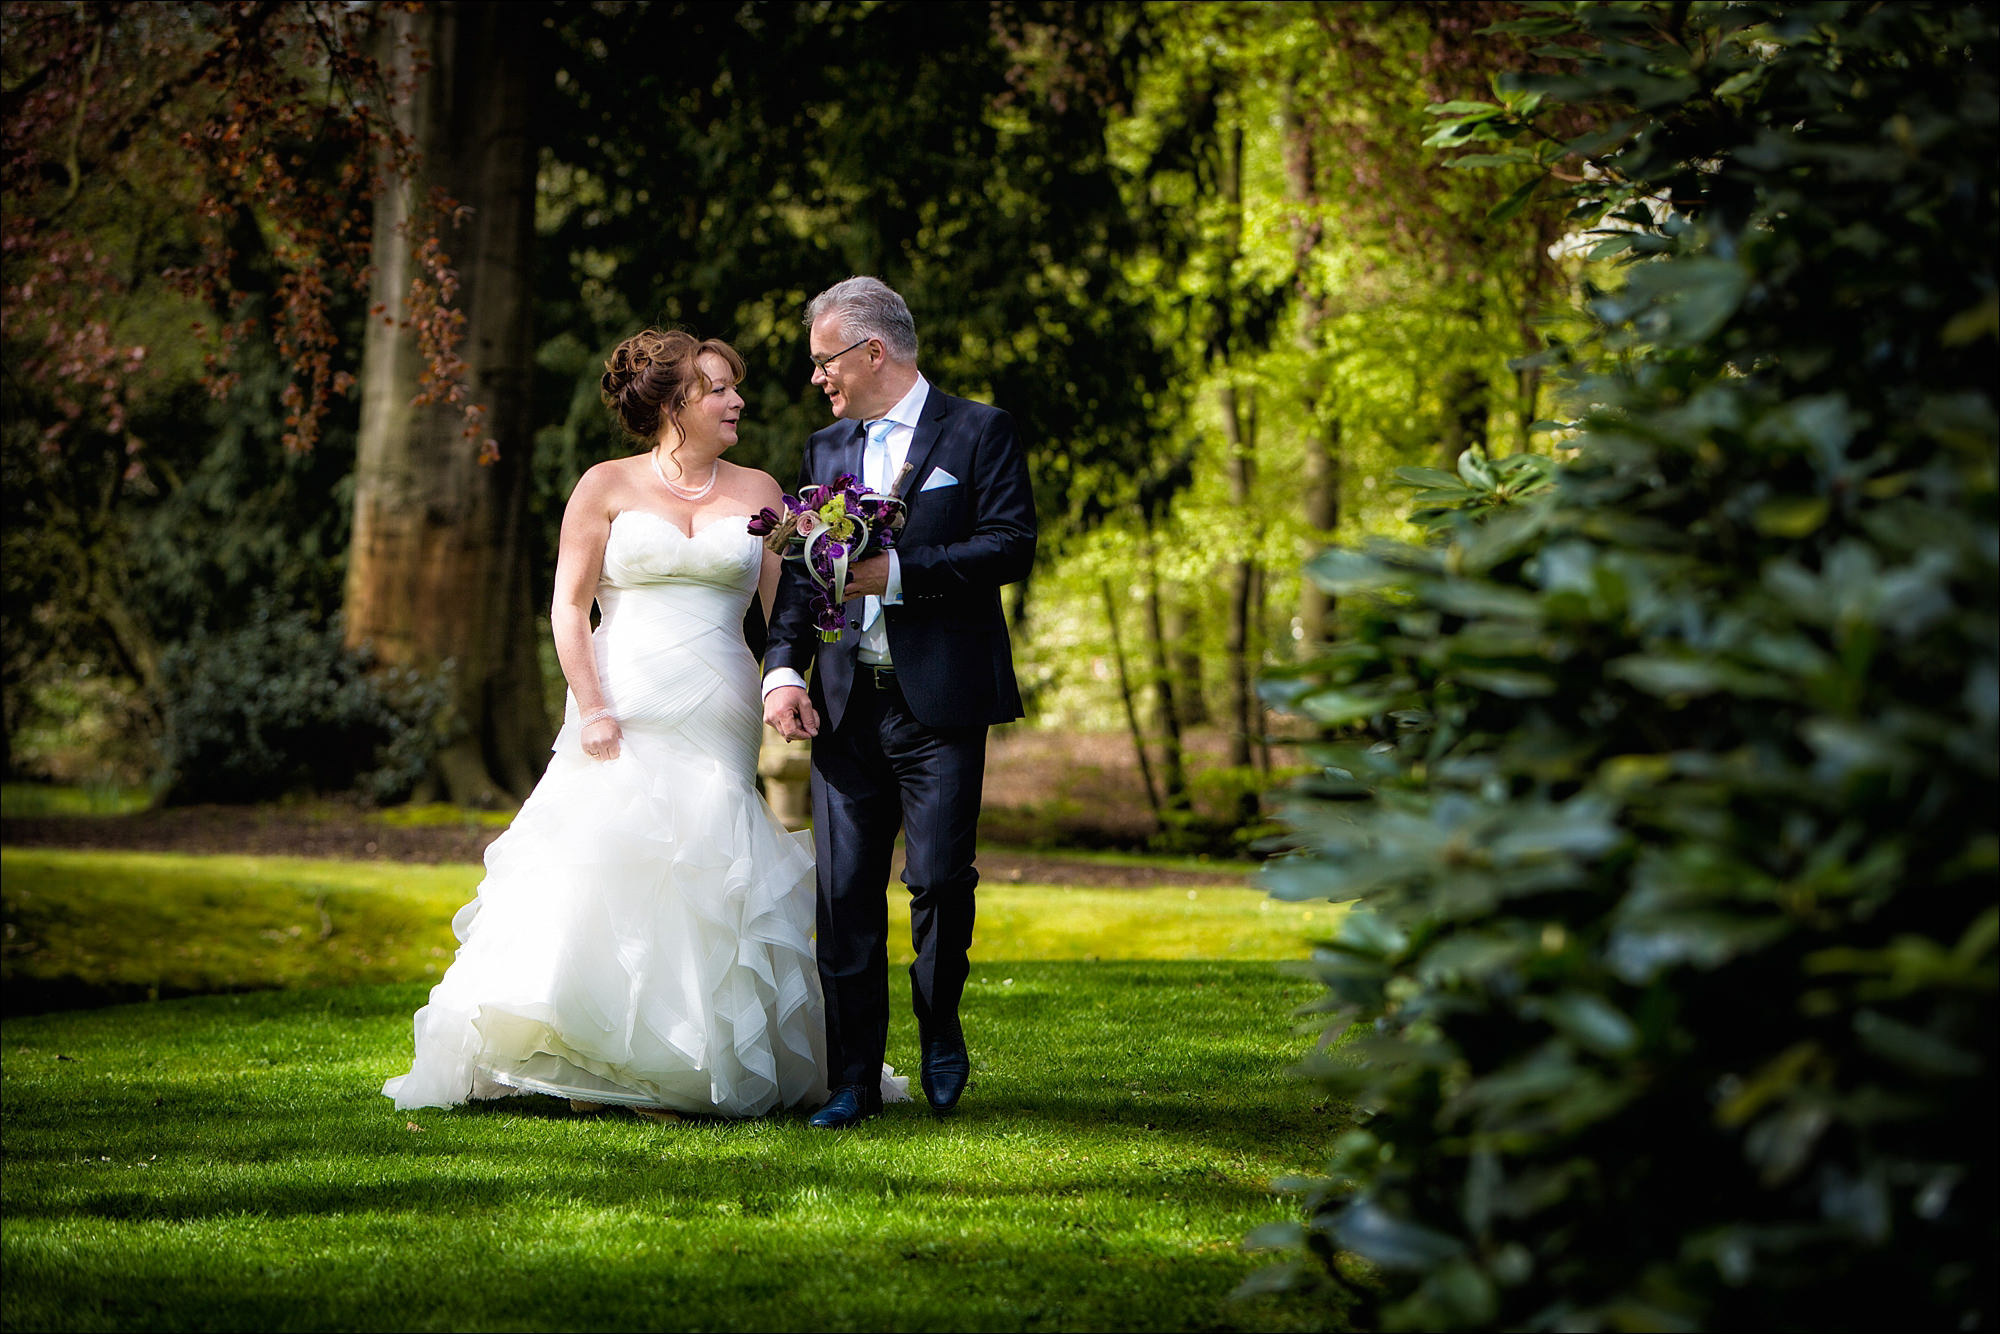 wedding photographer dublin david duignan photography real weddings Ireland 28